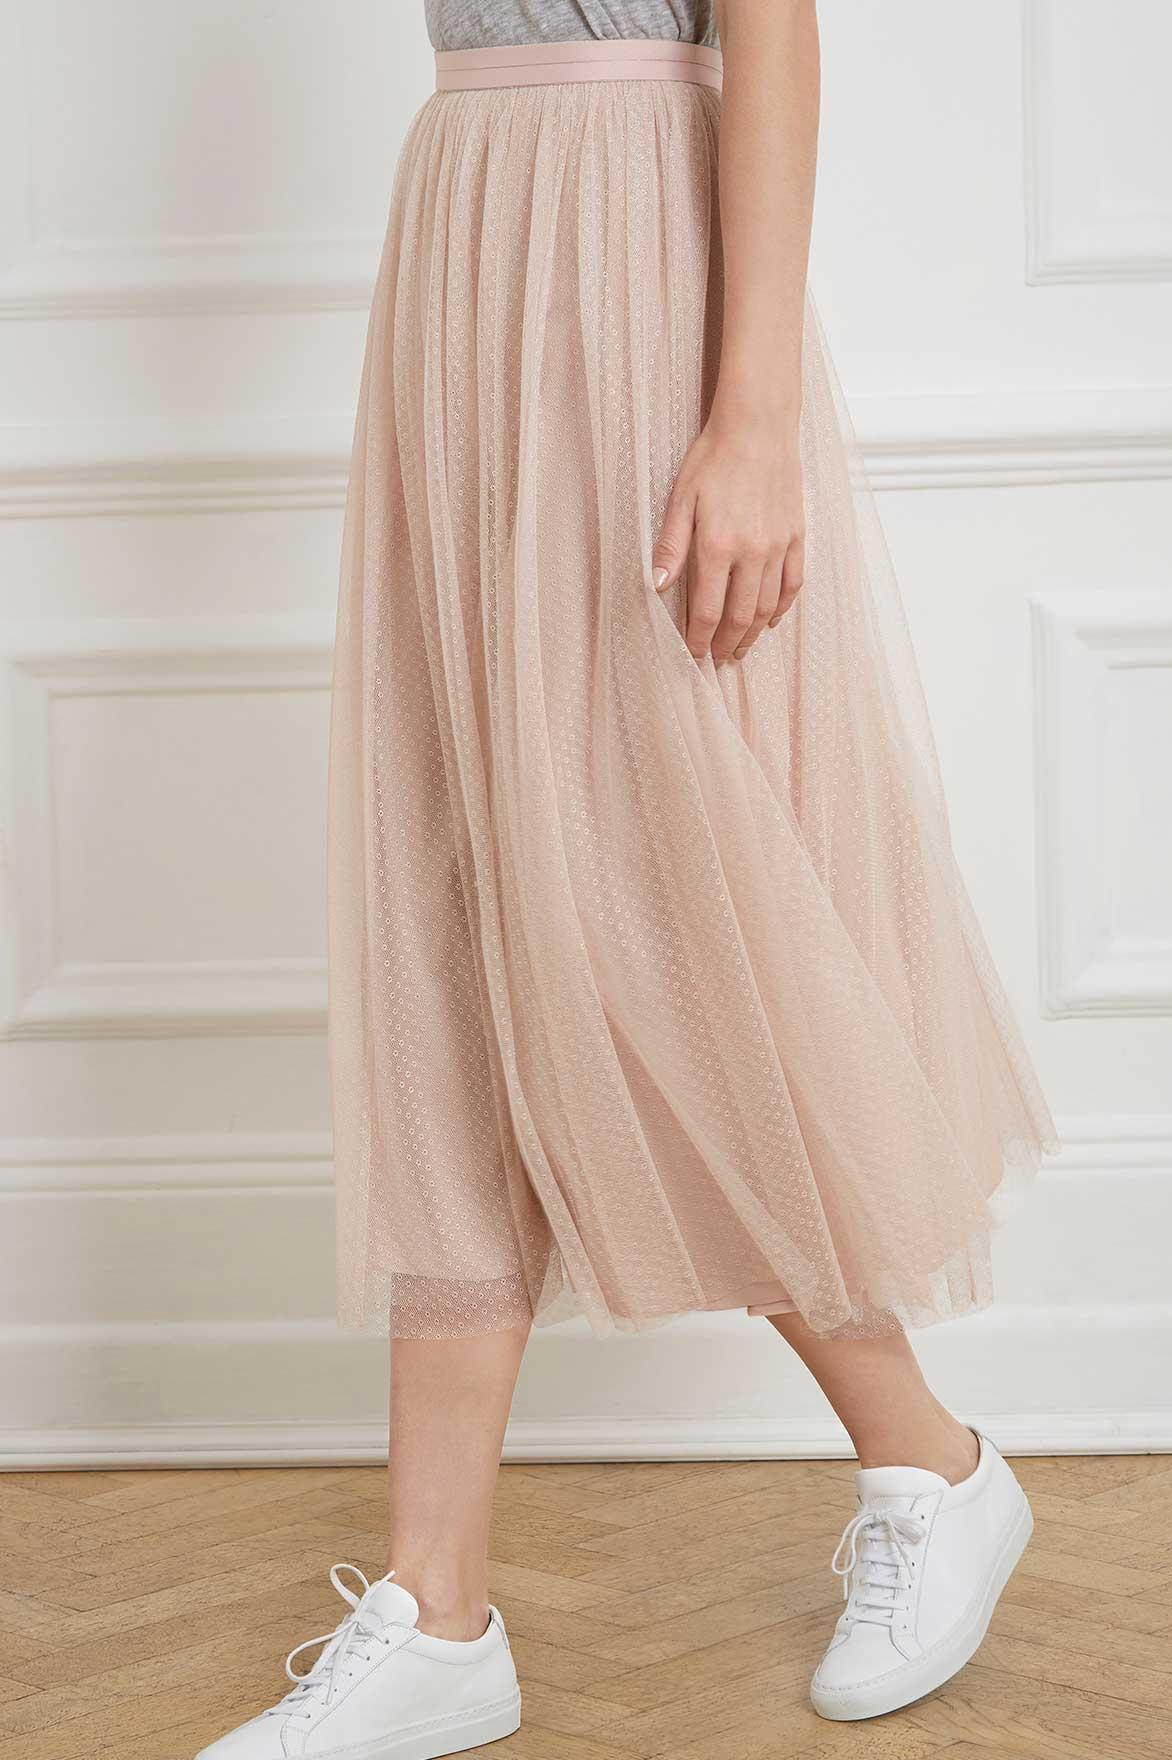 enjoy clearance price sale retailer variety of designs and colors Needle & Thread Dotted Tulle Midaxi Skirt in Rose (Pink) - Lyst